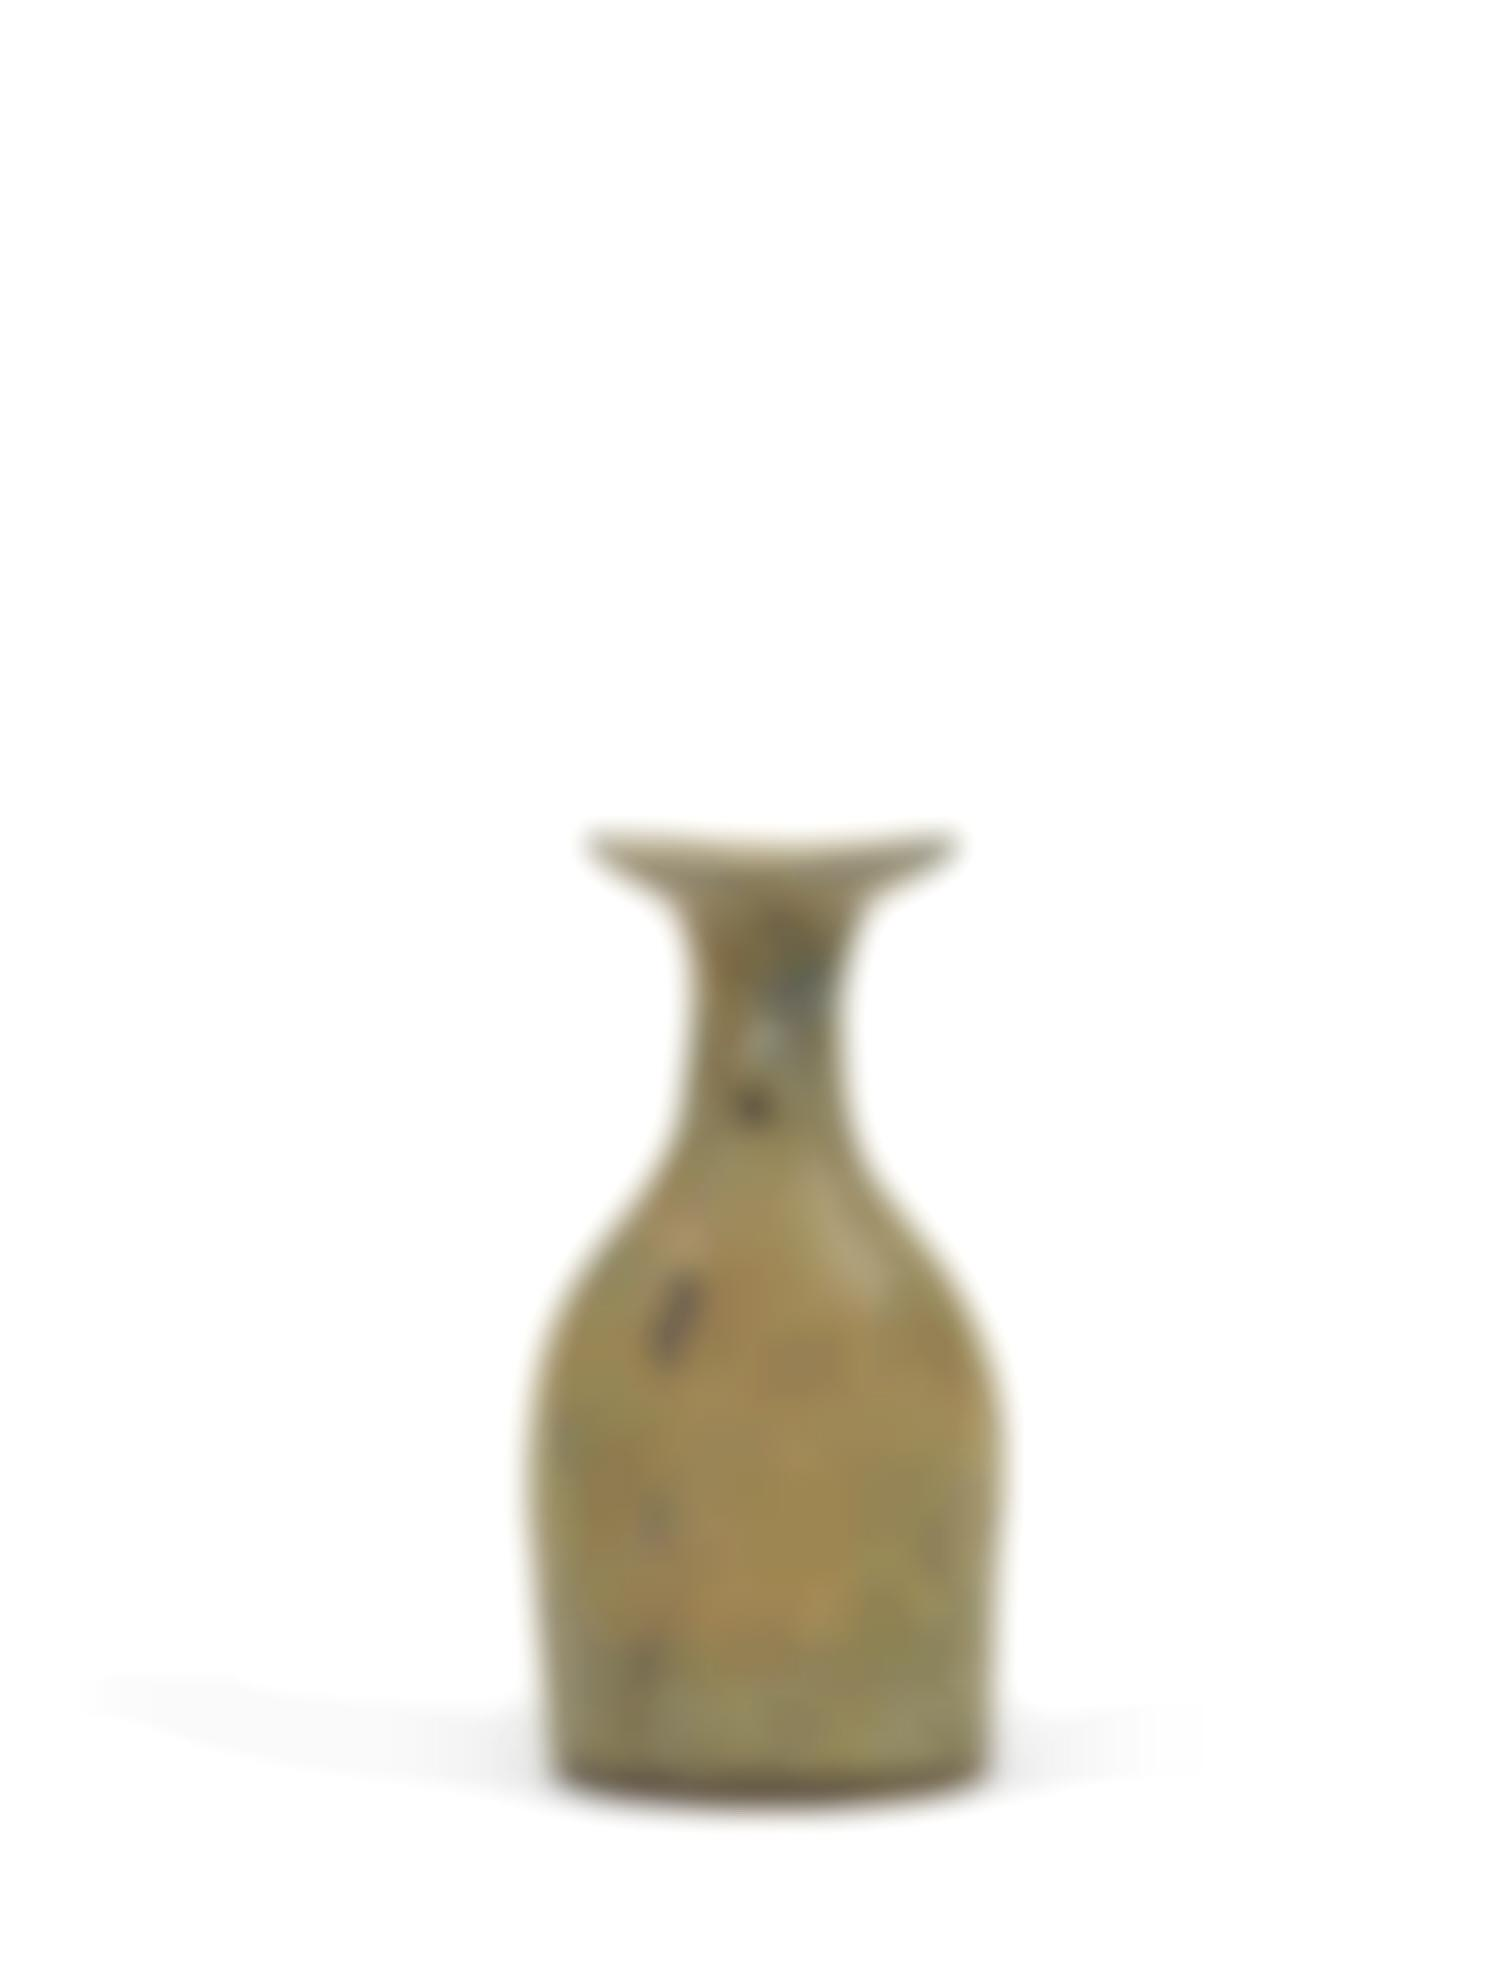 Dame Lucie Rie - Small Bottle Vase-1970